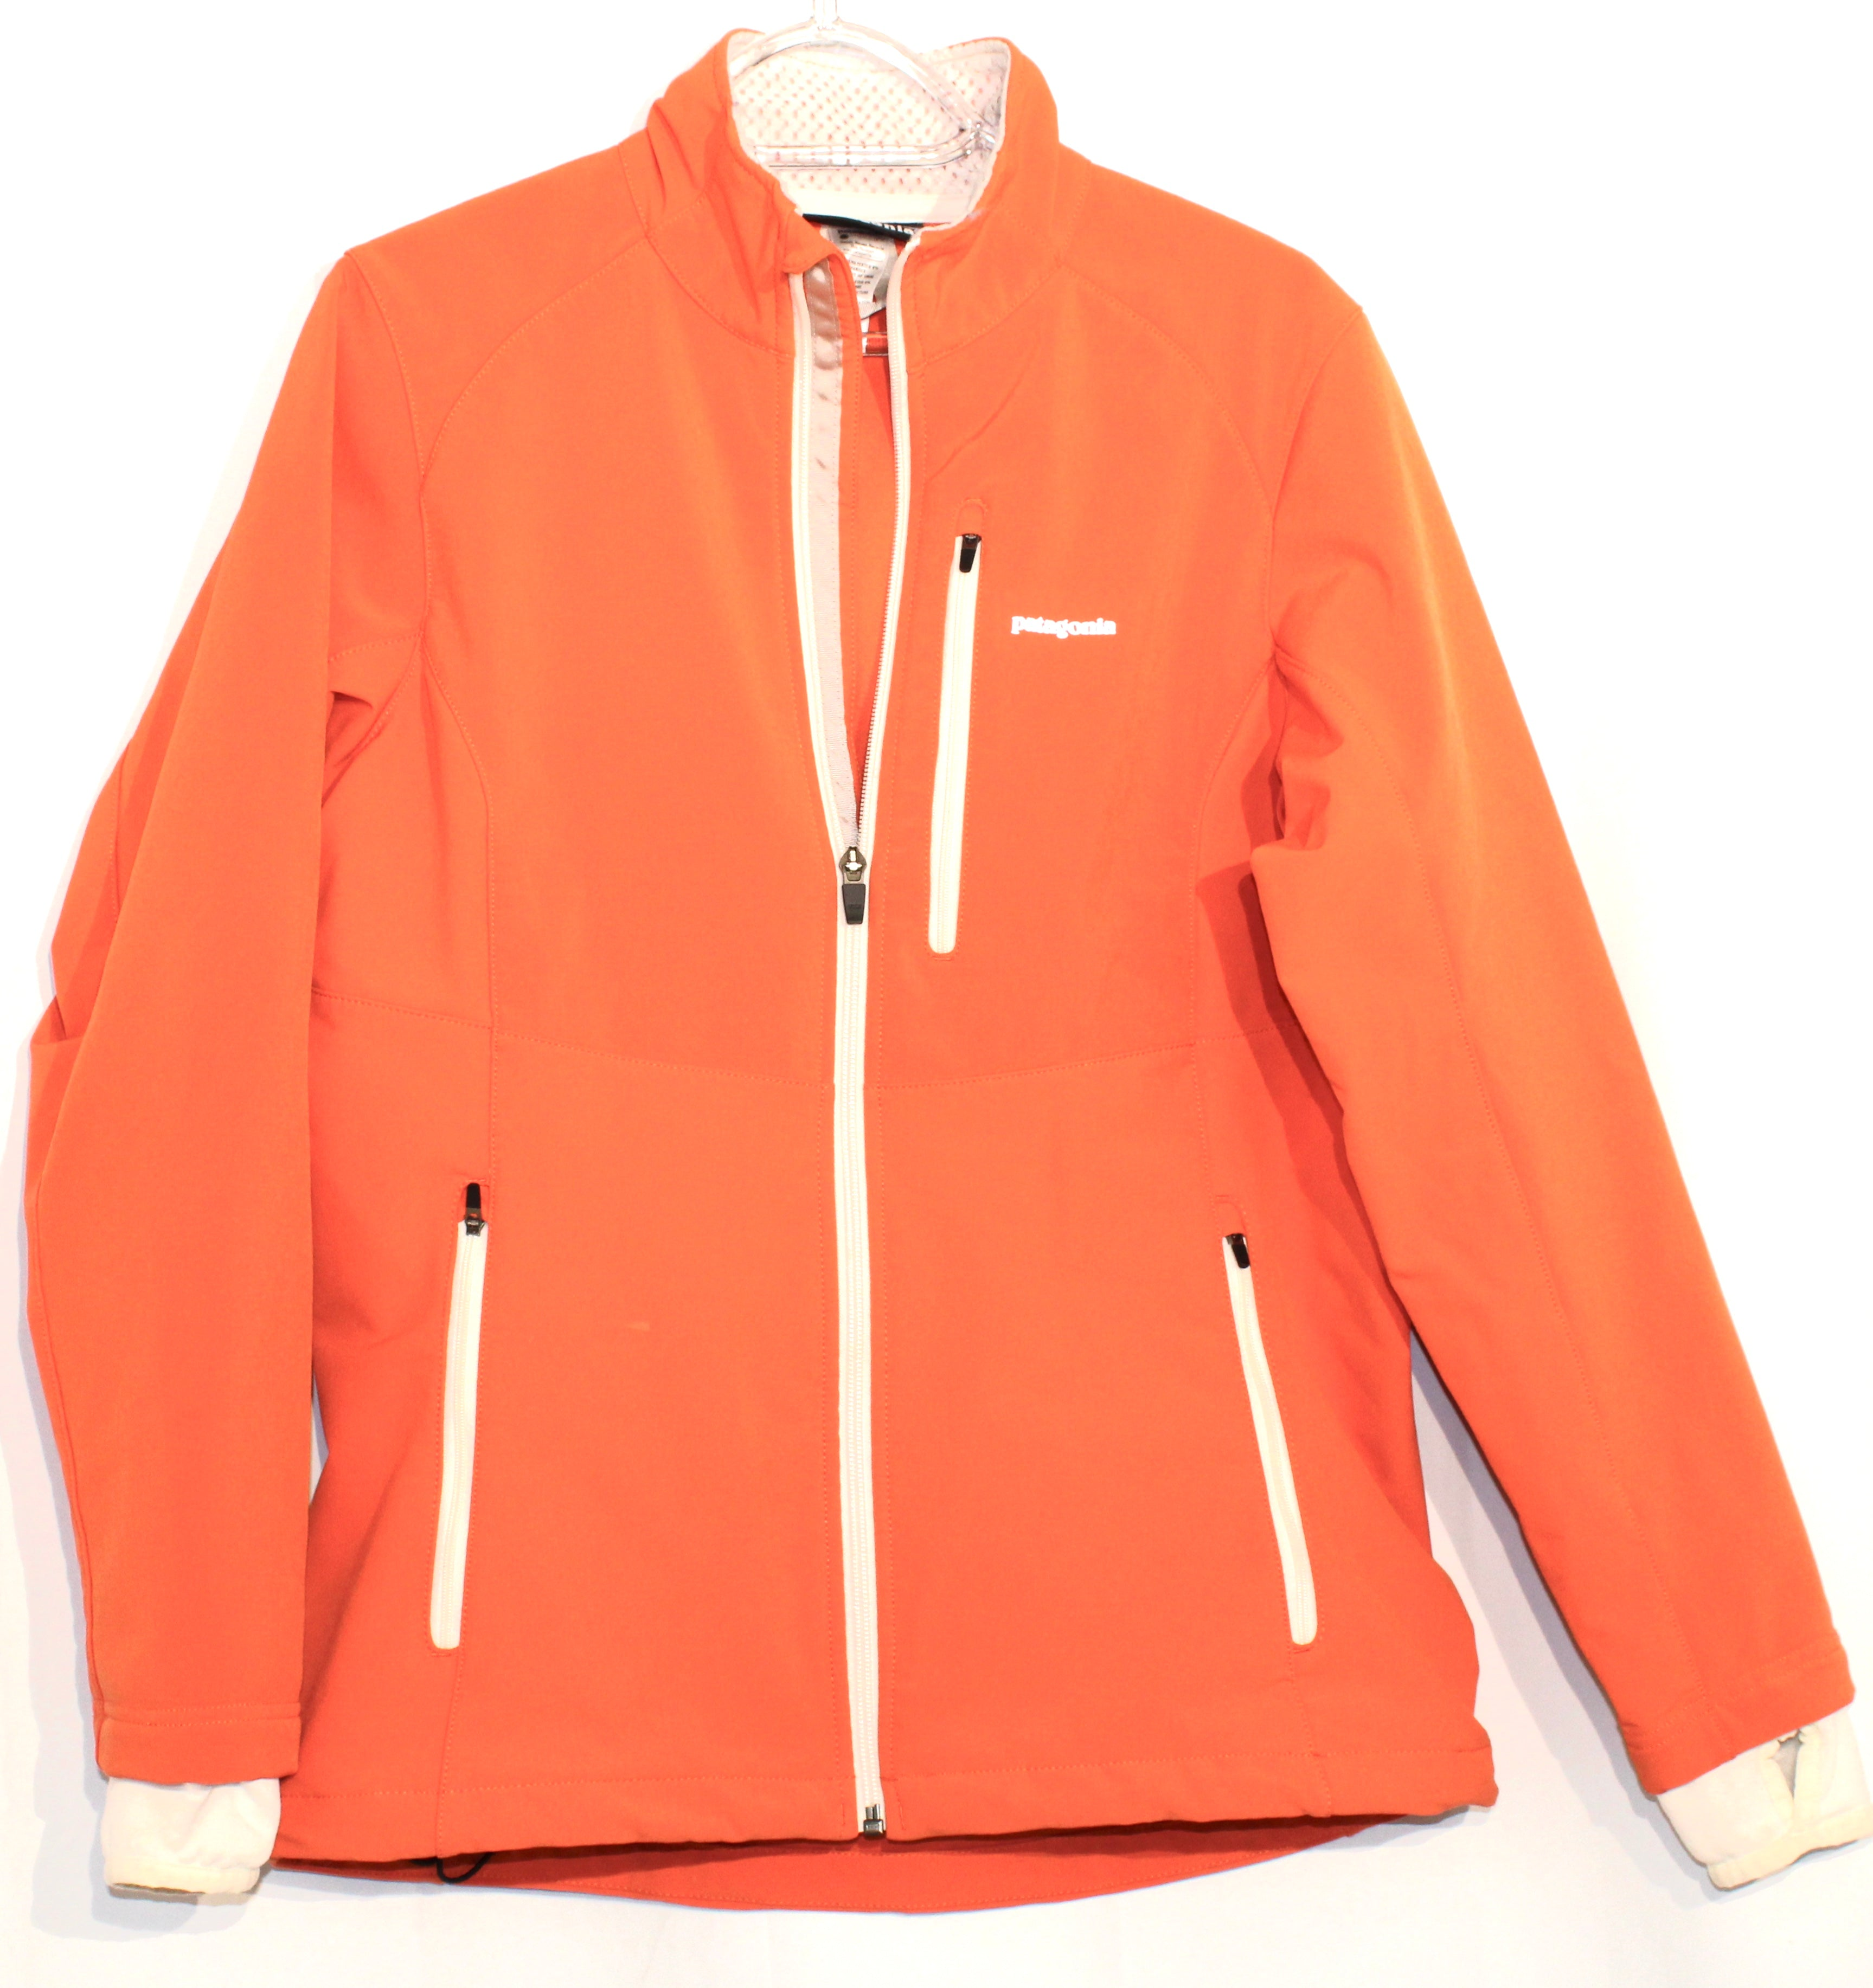 Primary Photo - BRAND: PATAGONIA <BR>STYLE: JACKET OUTDOOR <BR>COLOR: ORANGE <BR>SIZE: M <BR>SKU: 262-26285-2820<BR><BR>DESIGNER FINAL